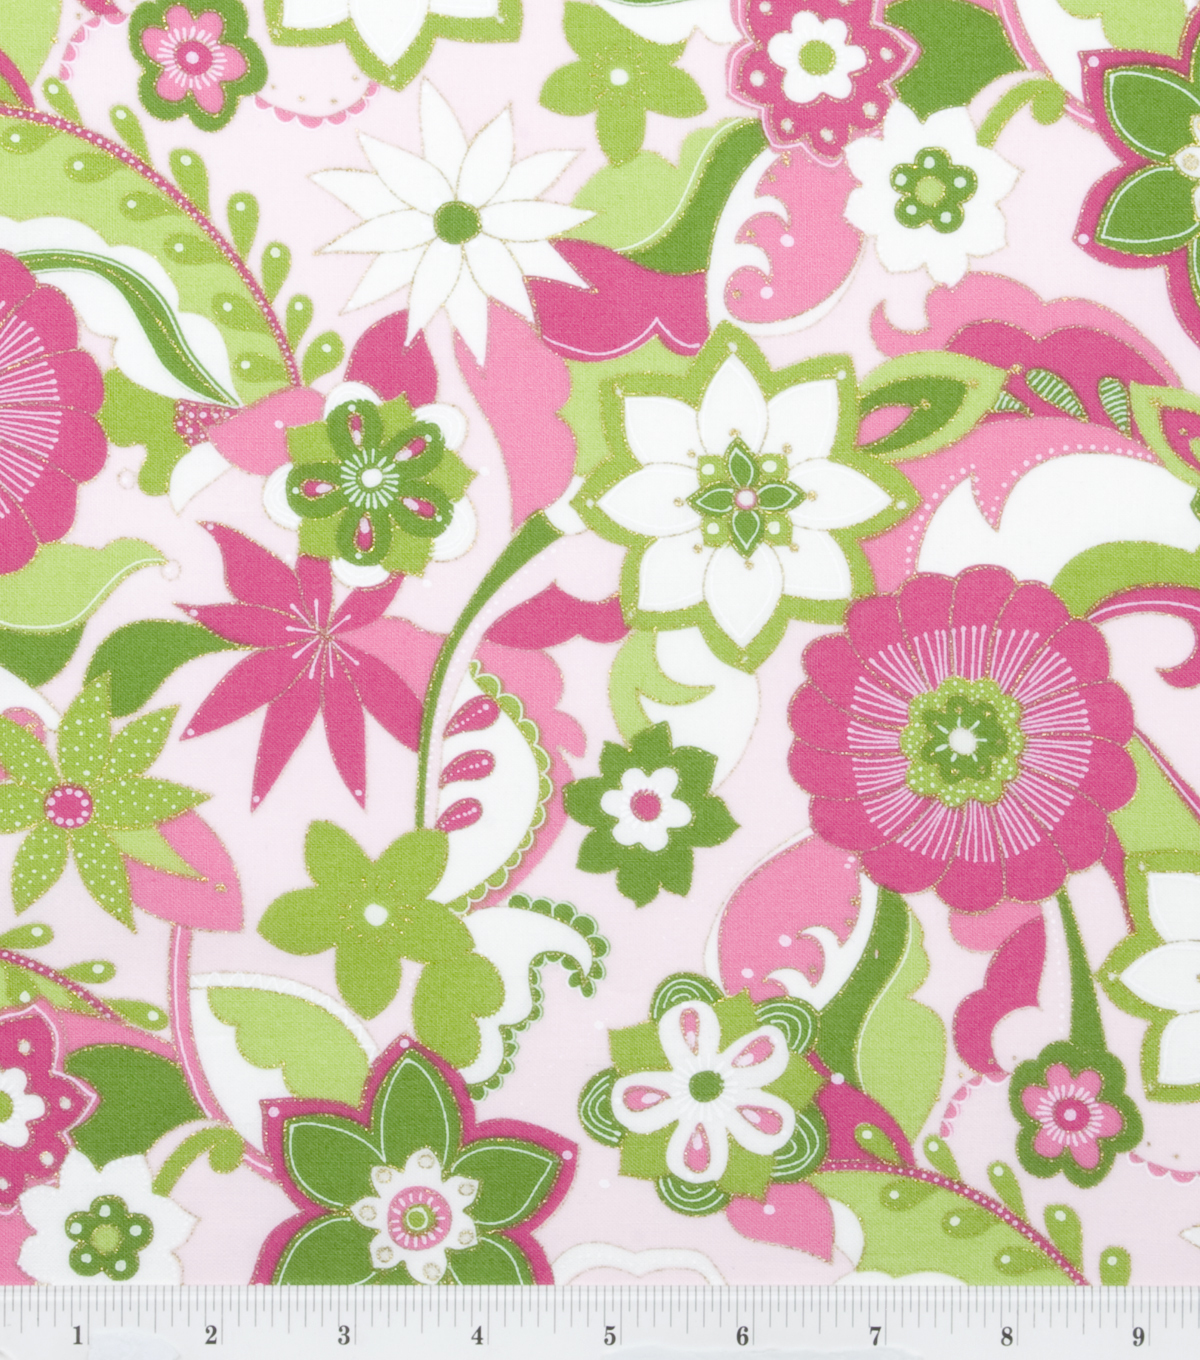 Keepsake Calico™ Cotton Fabric-Pucci Floral pink green with Metallic Thread Accent